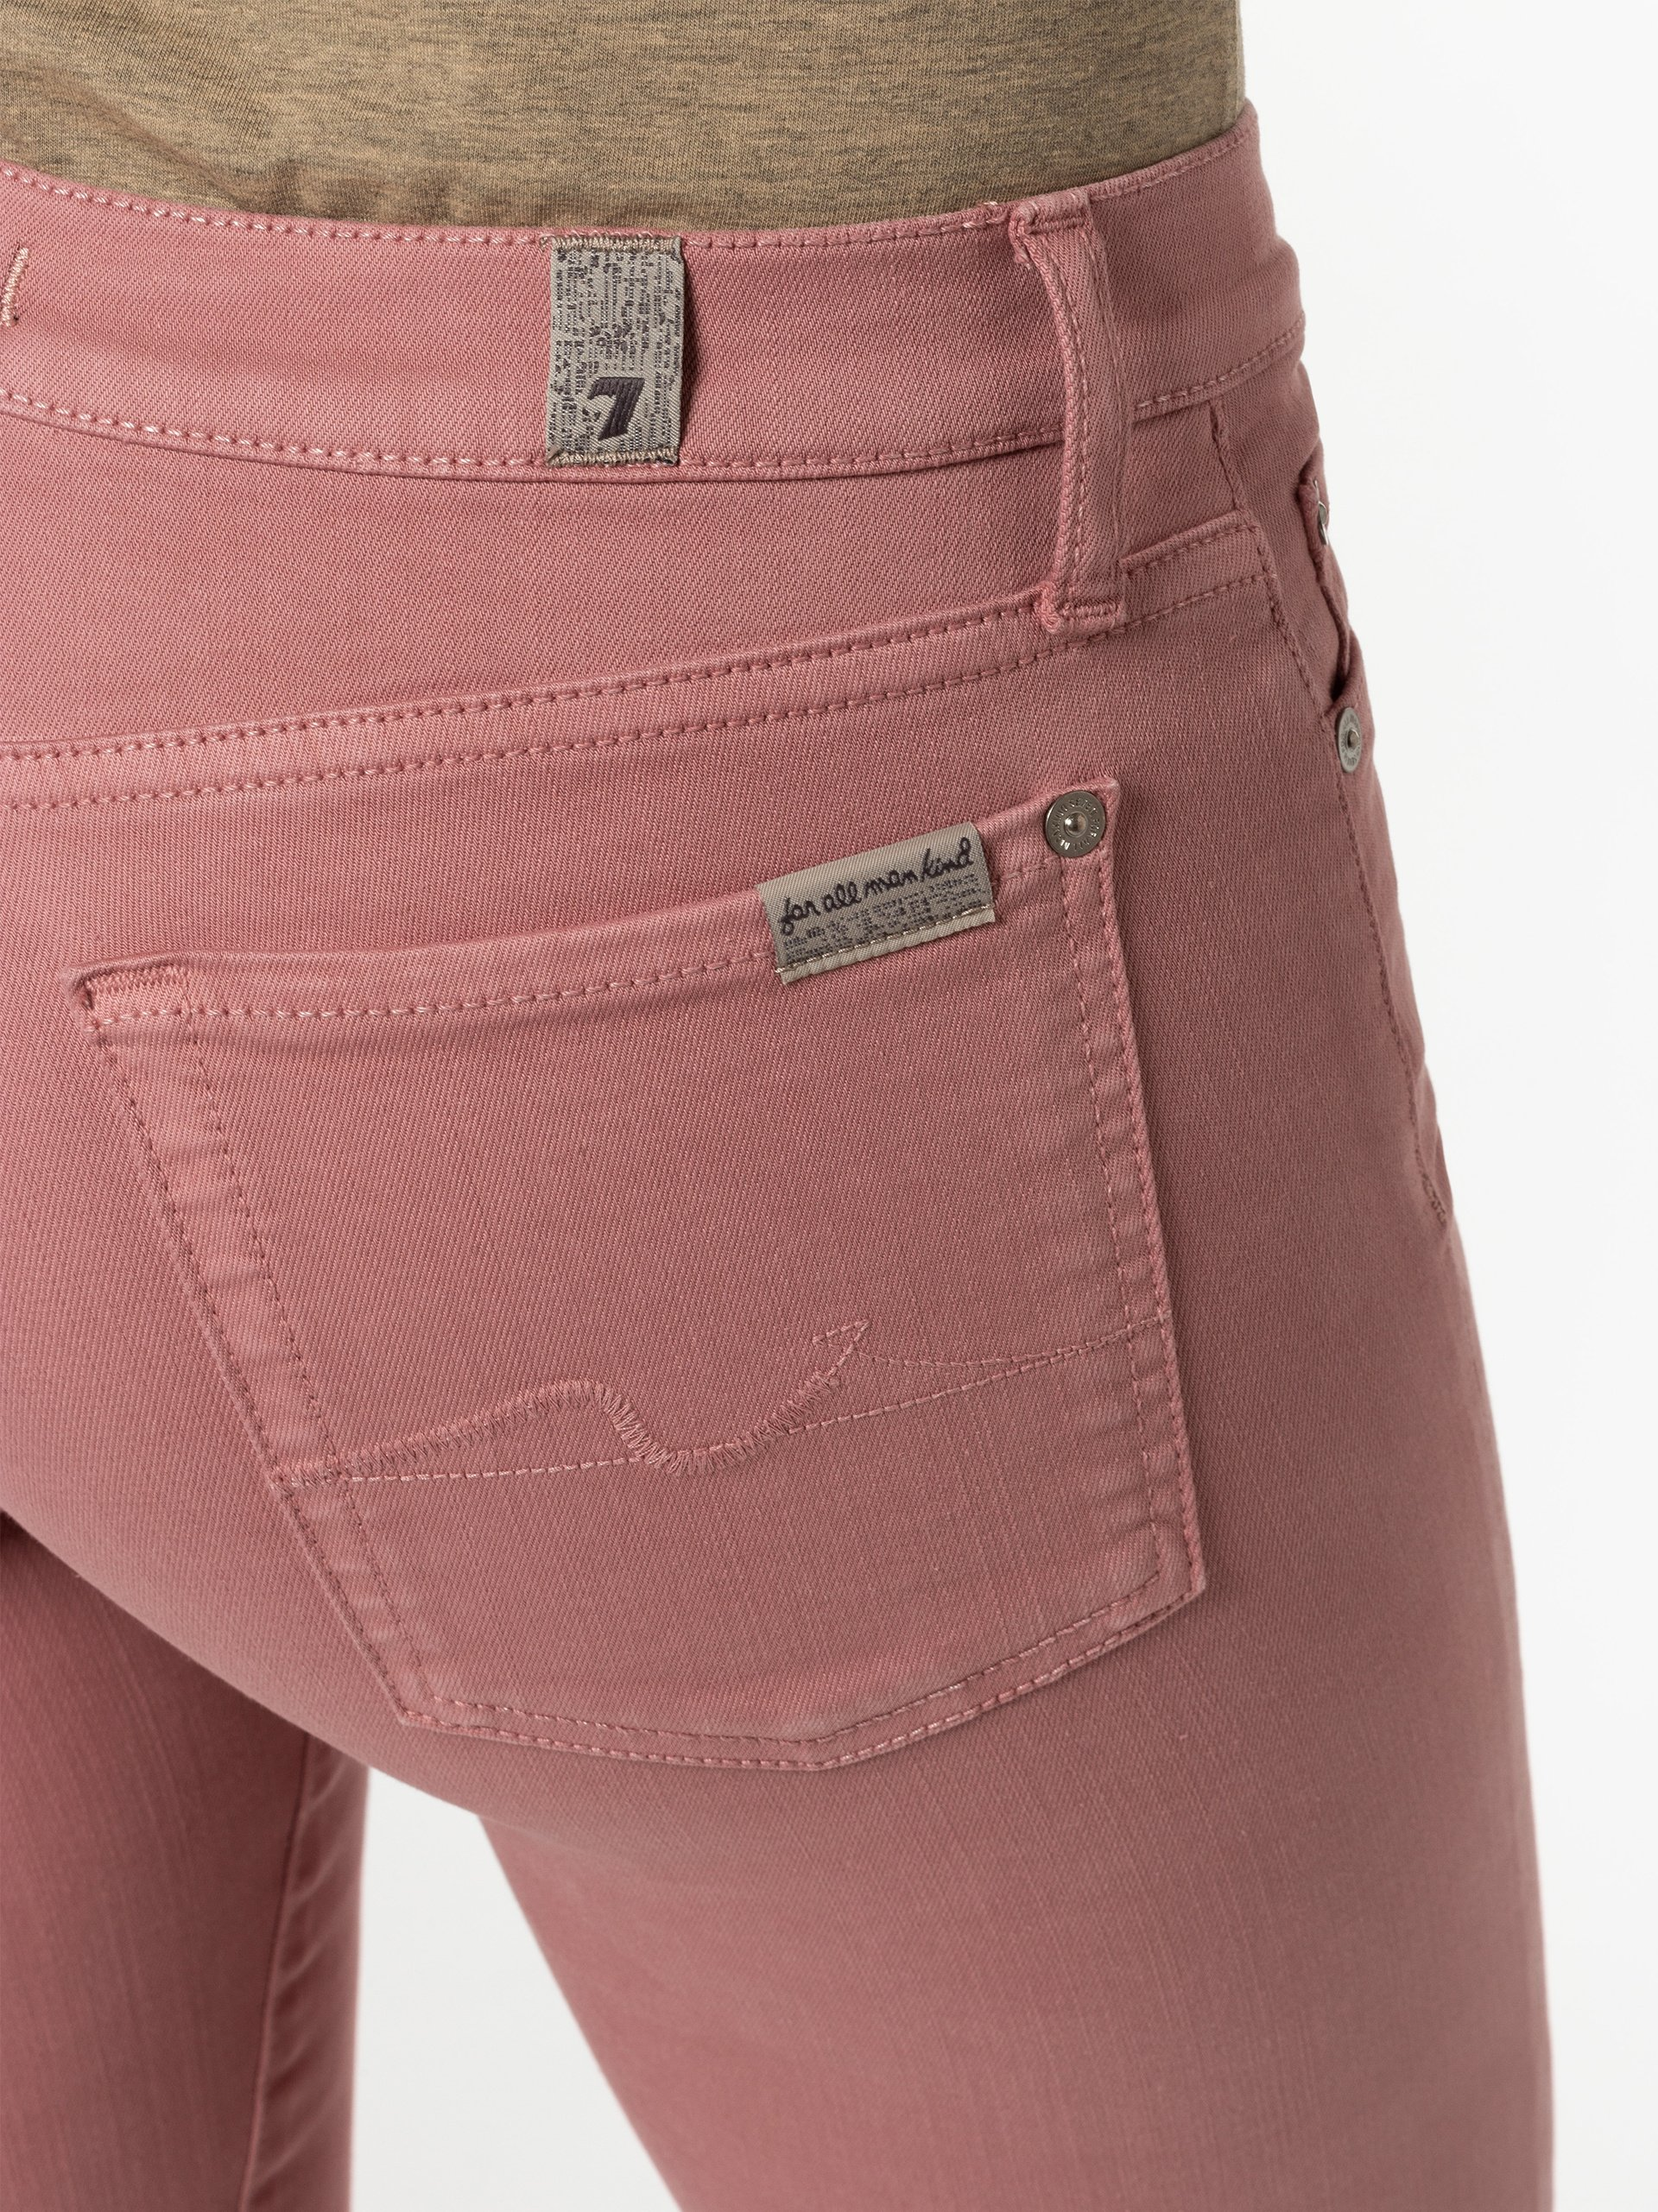 7 For All Mankind Damen Jeans